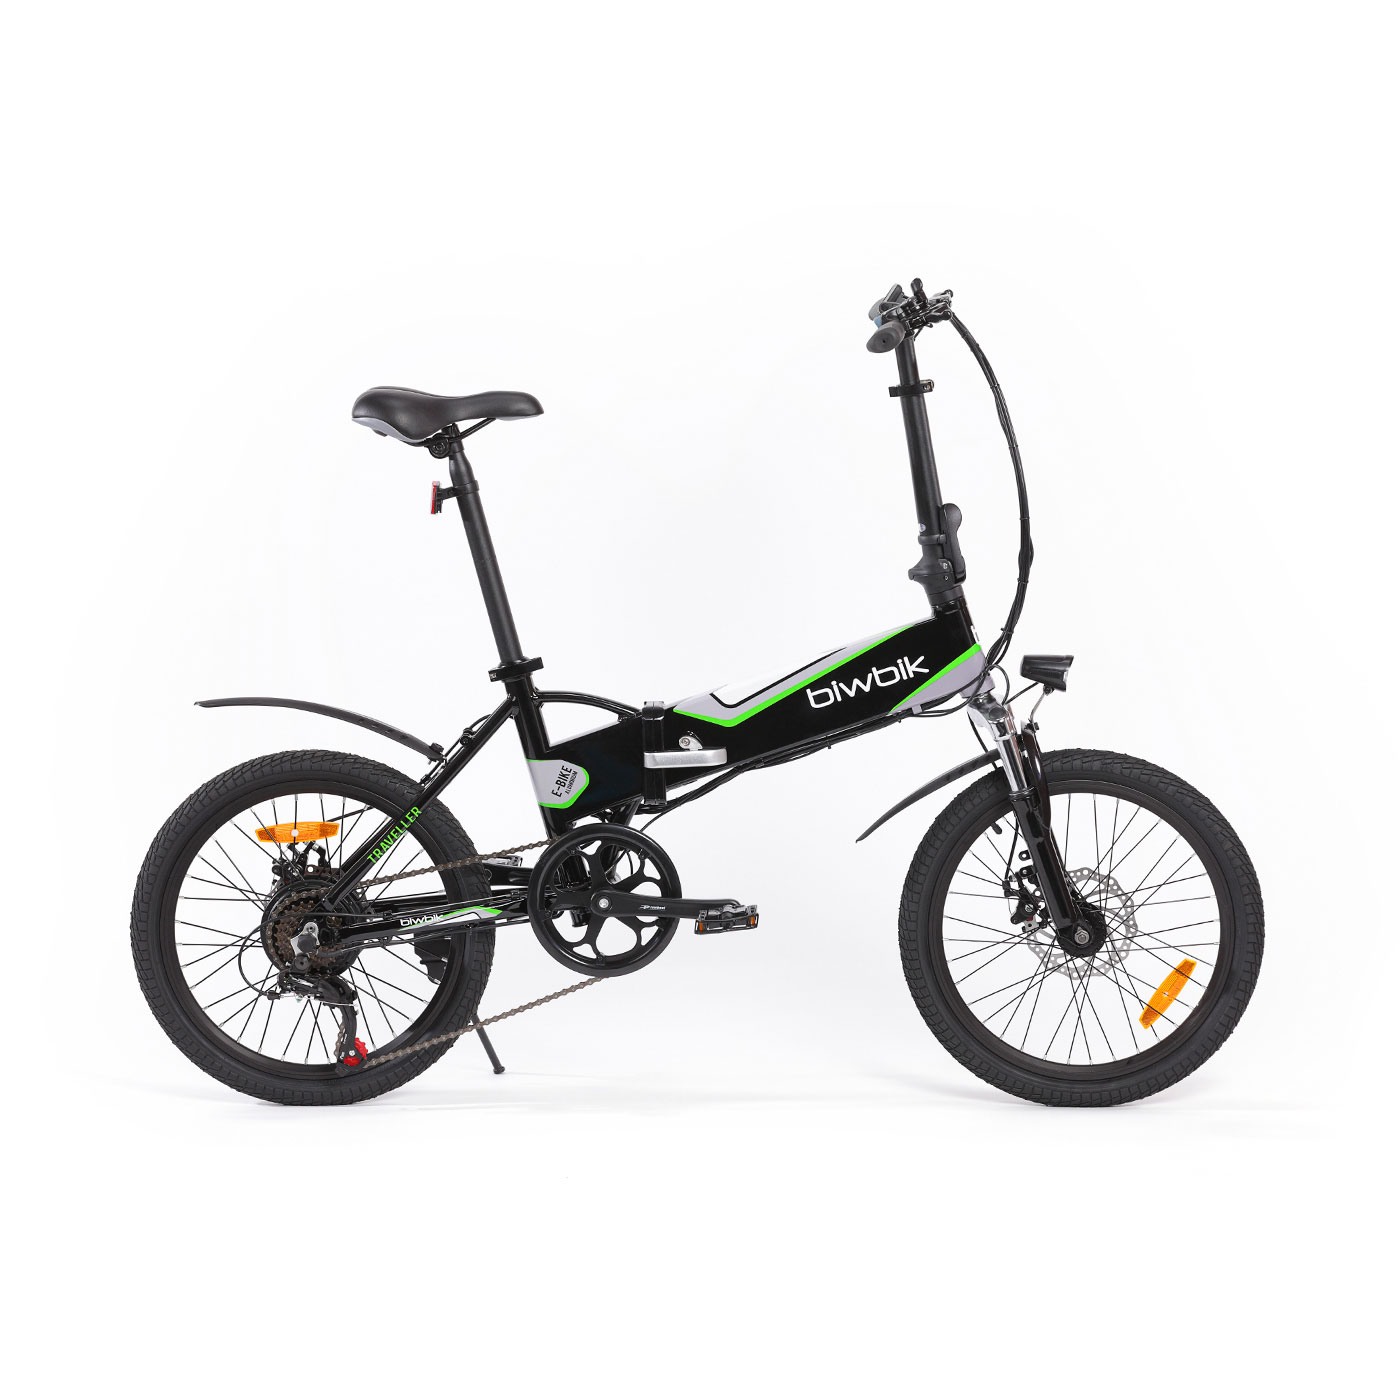 Electric bike folding Traveller black 2.0